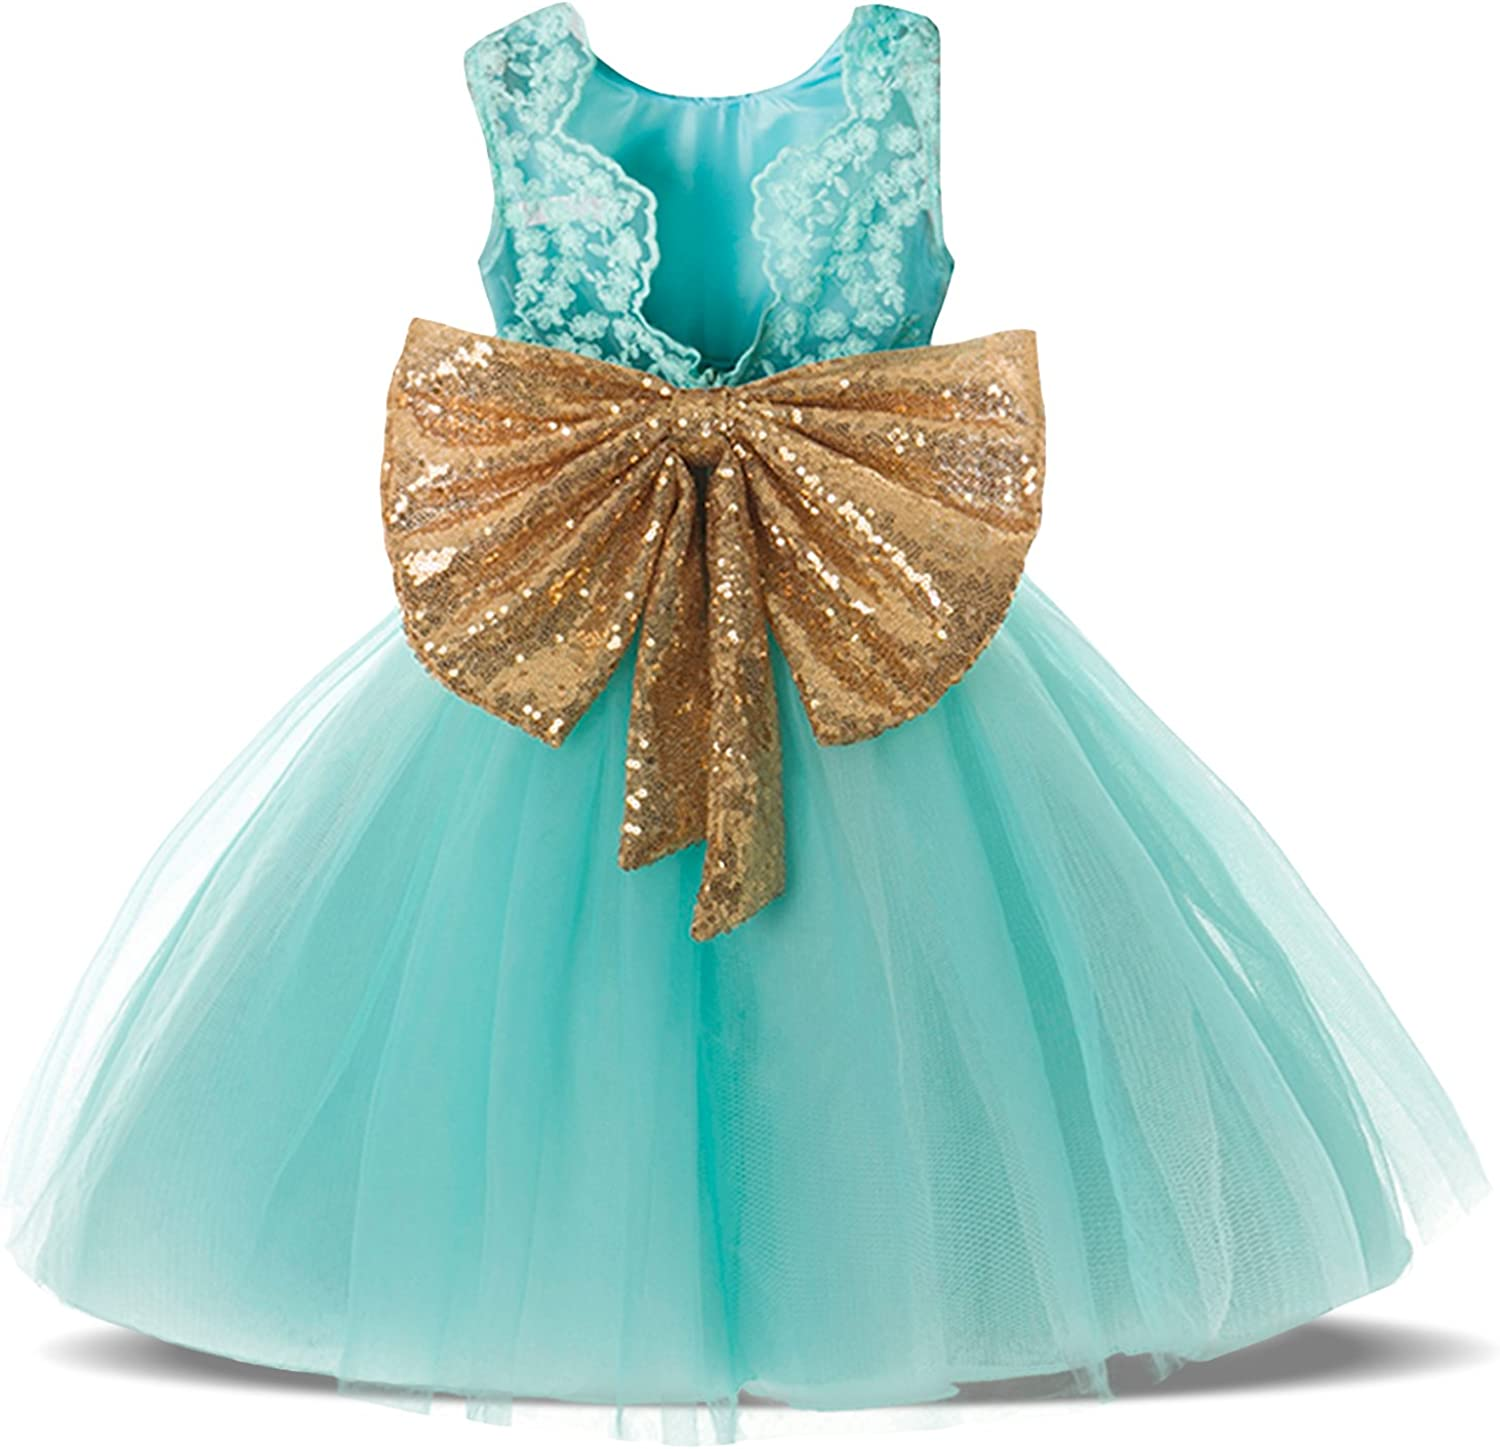 EsTong NEW Baby Girls Newborn Sequins Bowknot Party Toddler 1s Indefinitely Dress